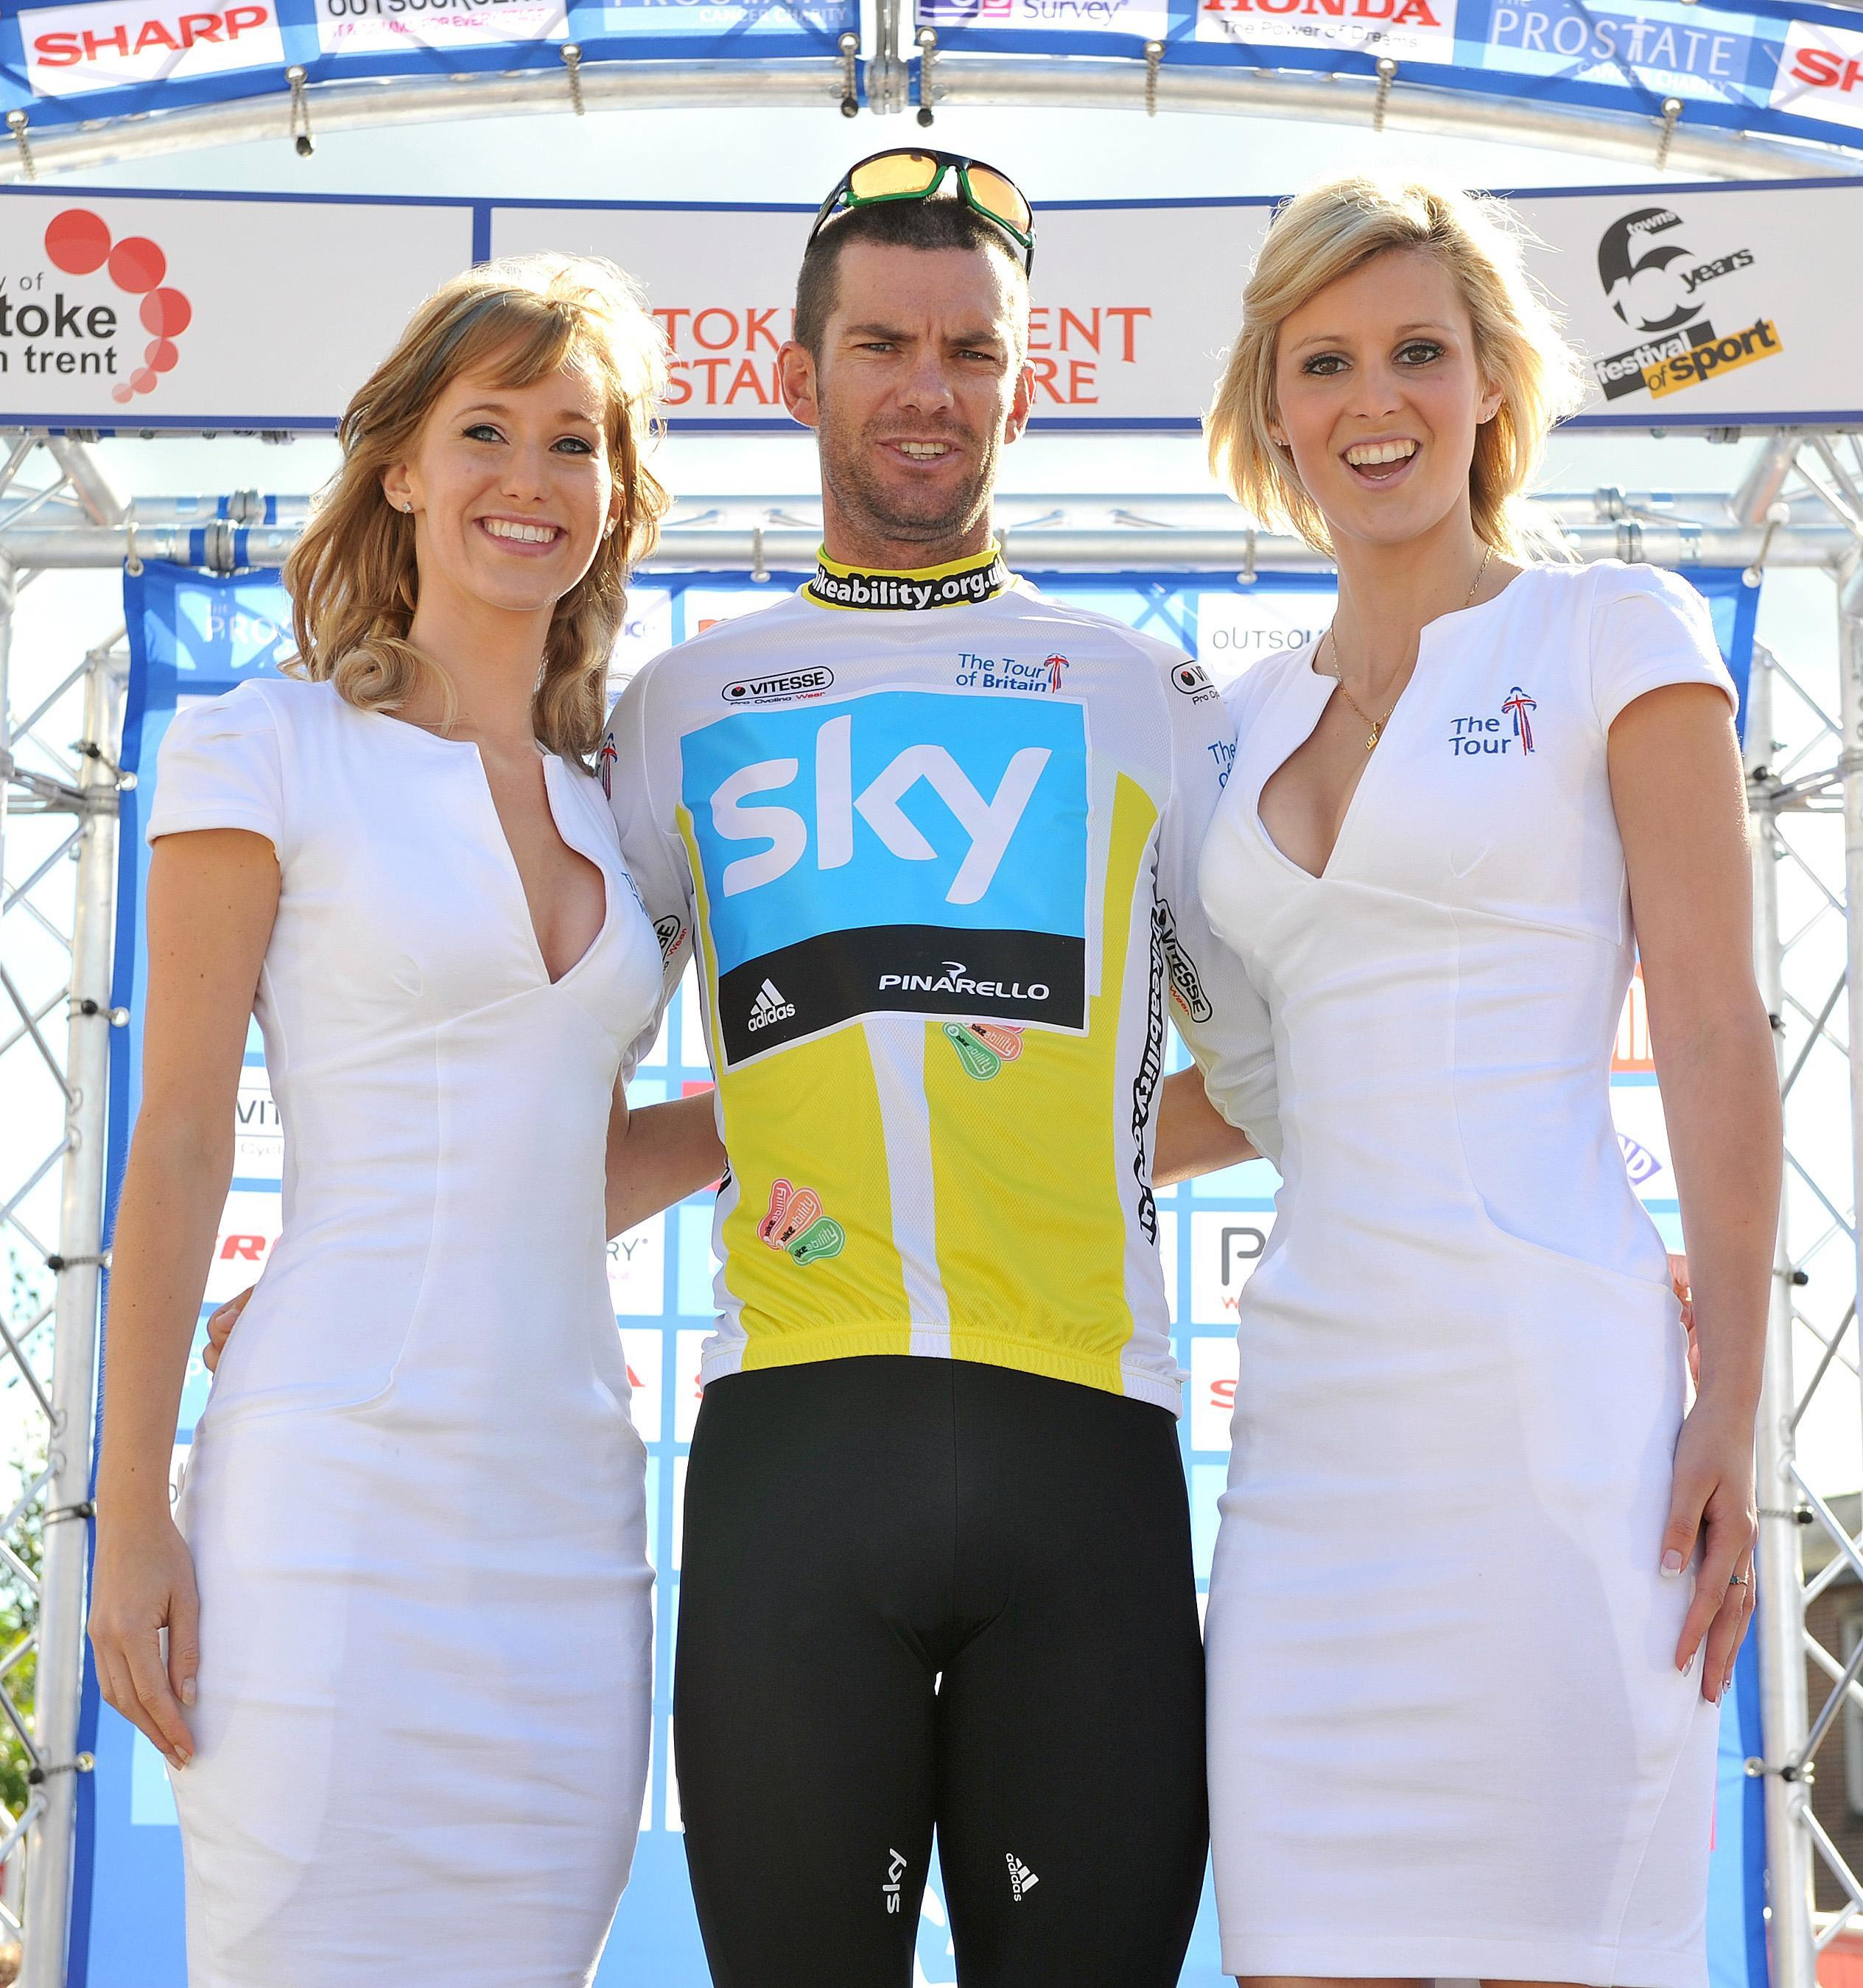 Greg Henderson, centre, rode for Team Sky in 2010 and 2011